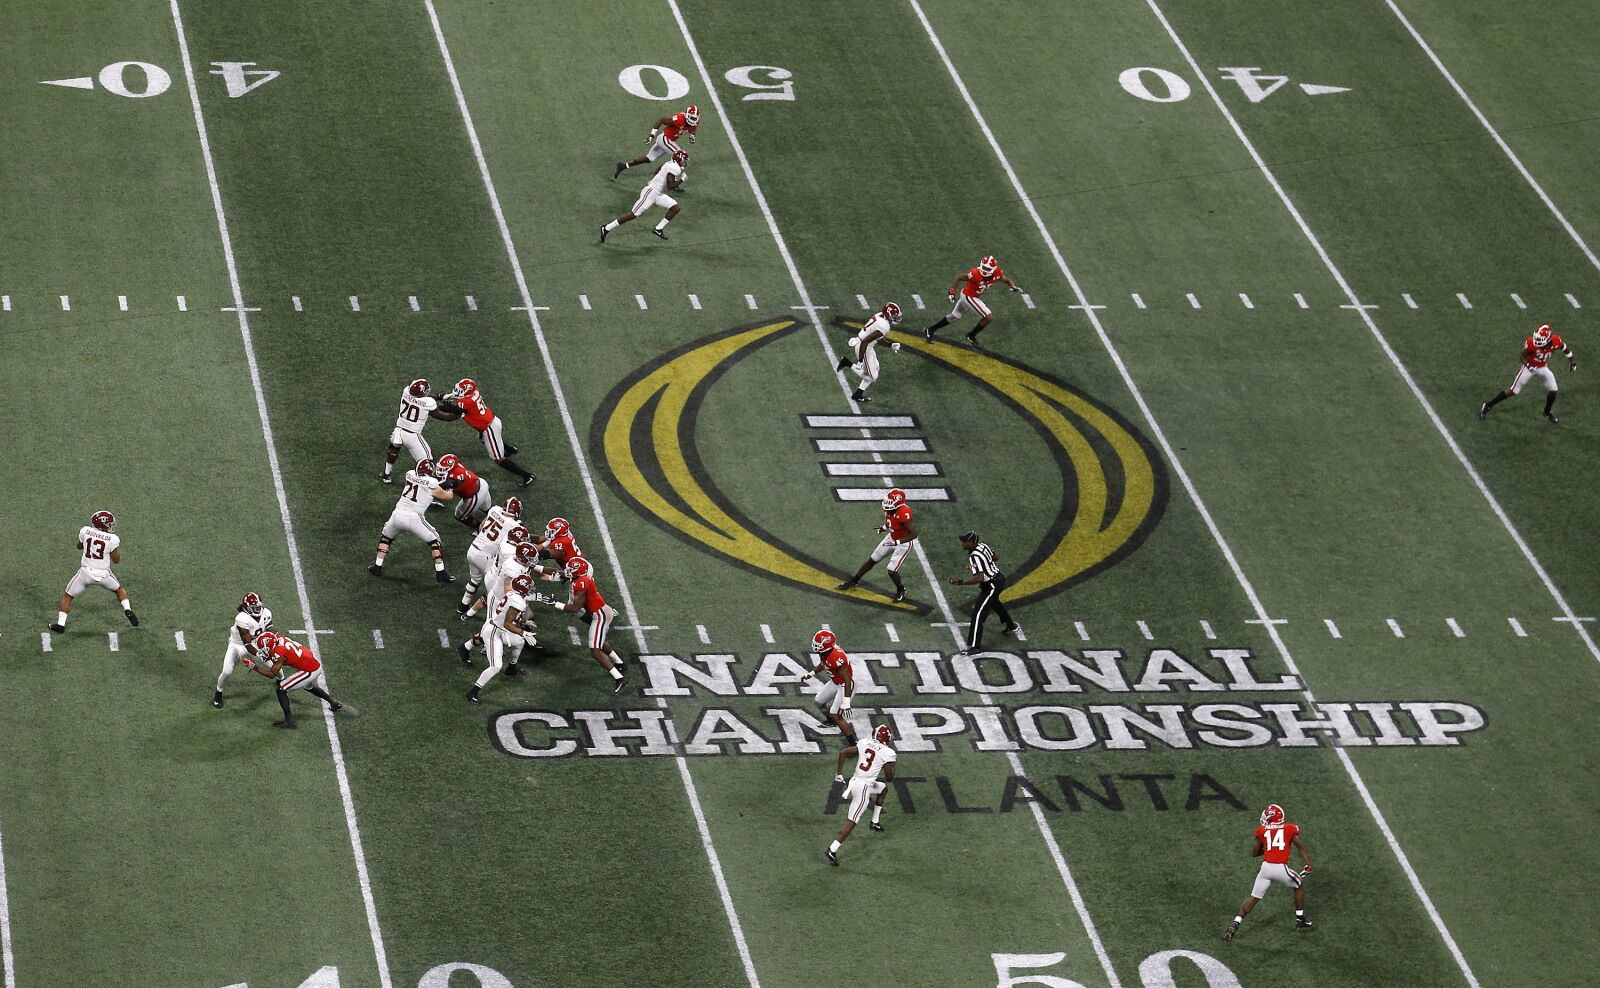 Oregon Football Snubbed Again from Playoff Rankings